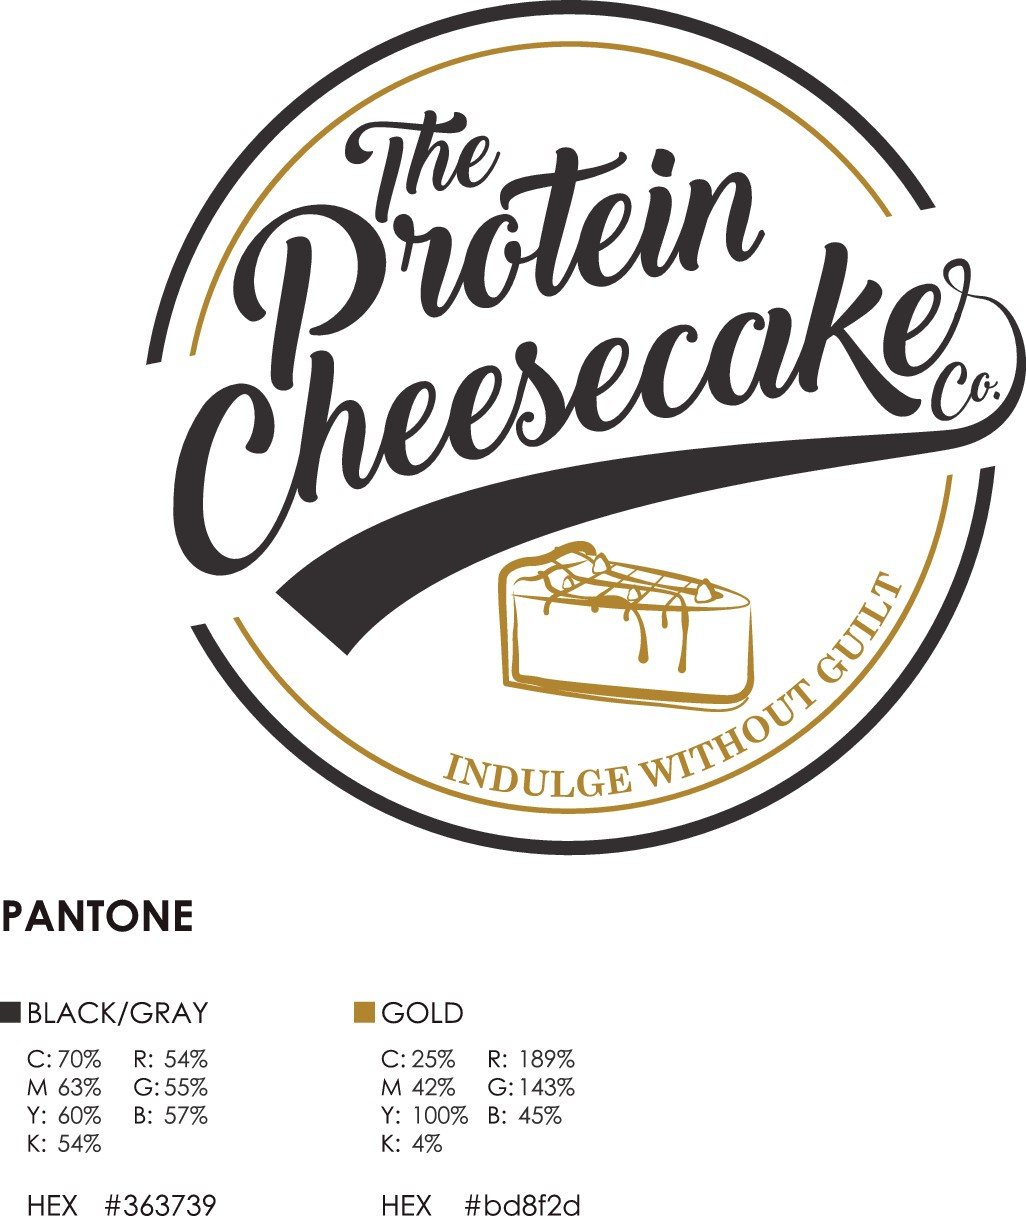 Create a delicious logo for the best healthy cheesecake ever made